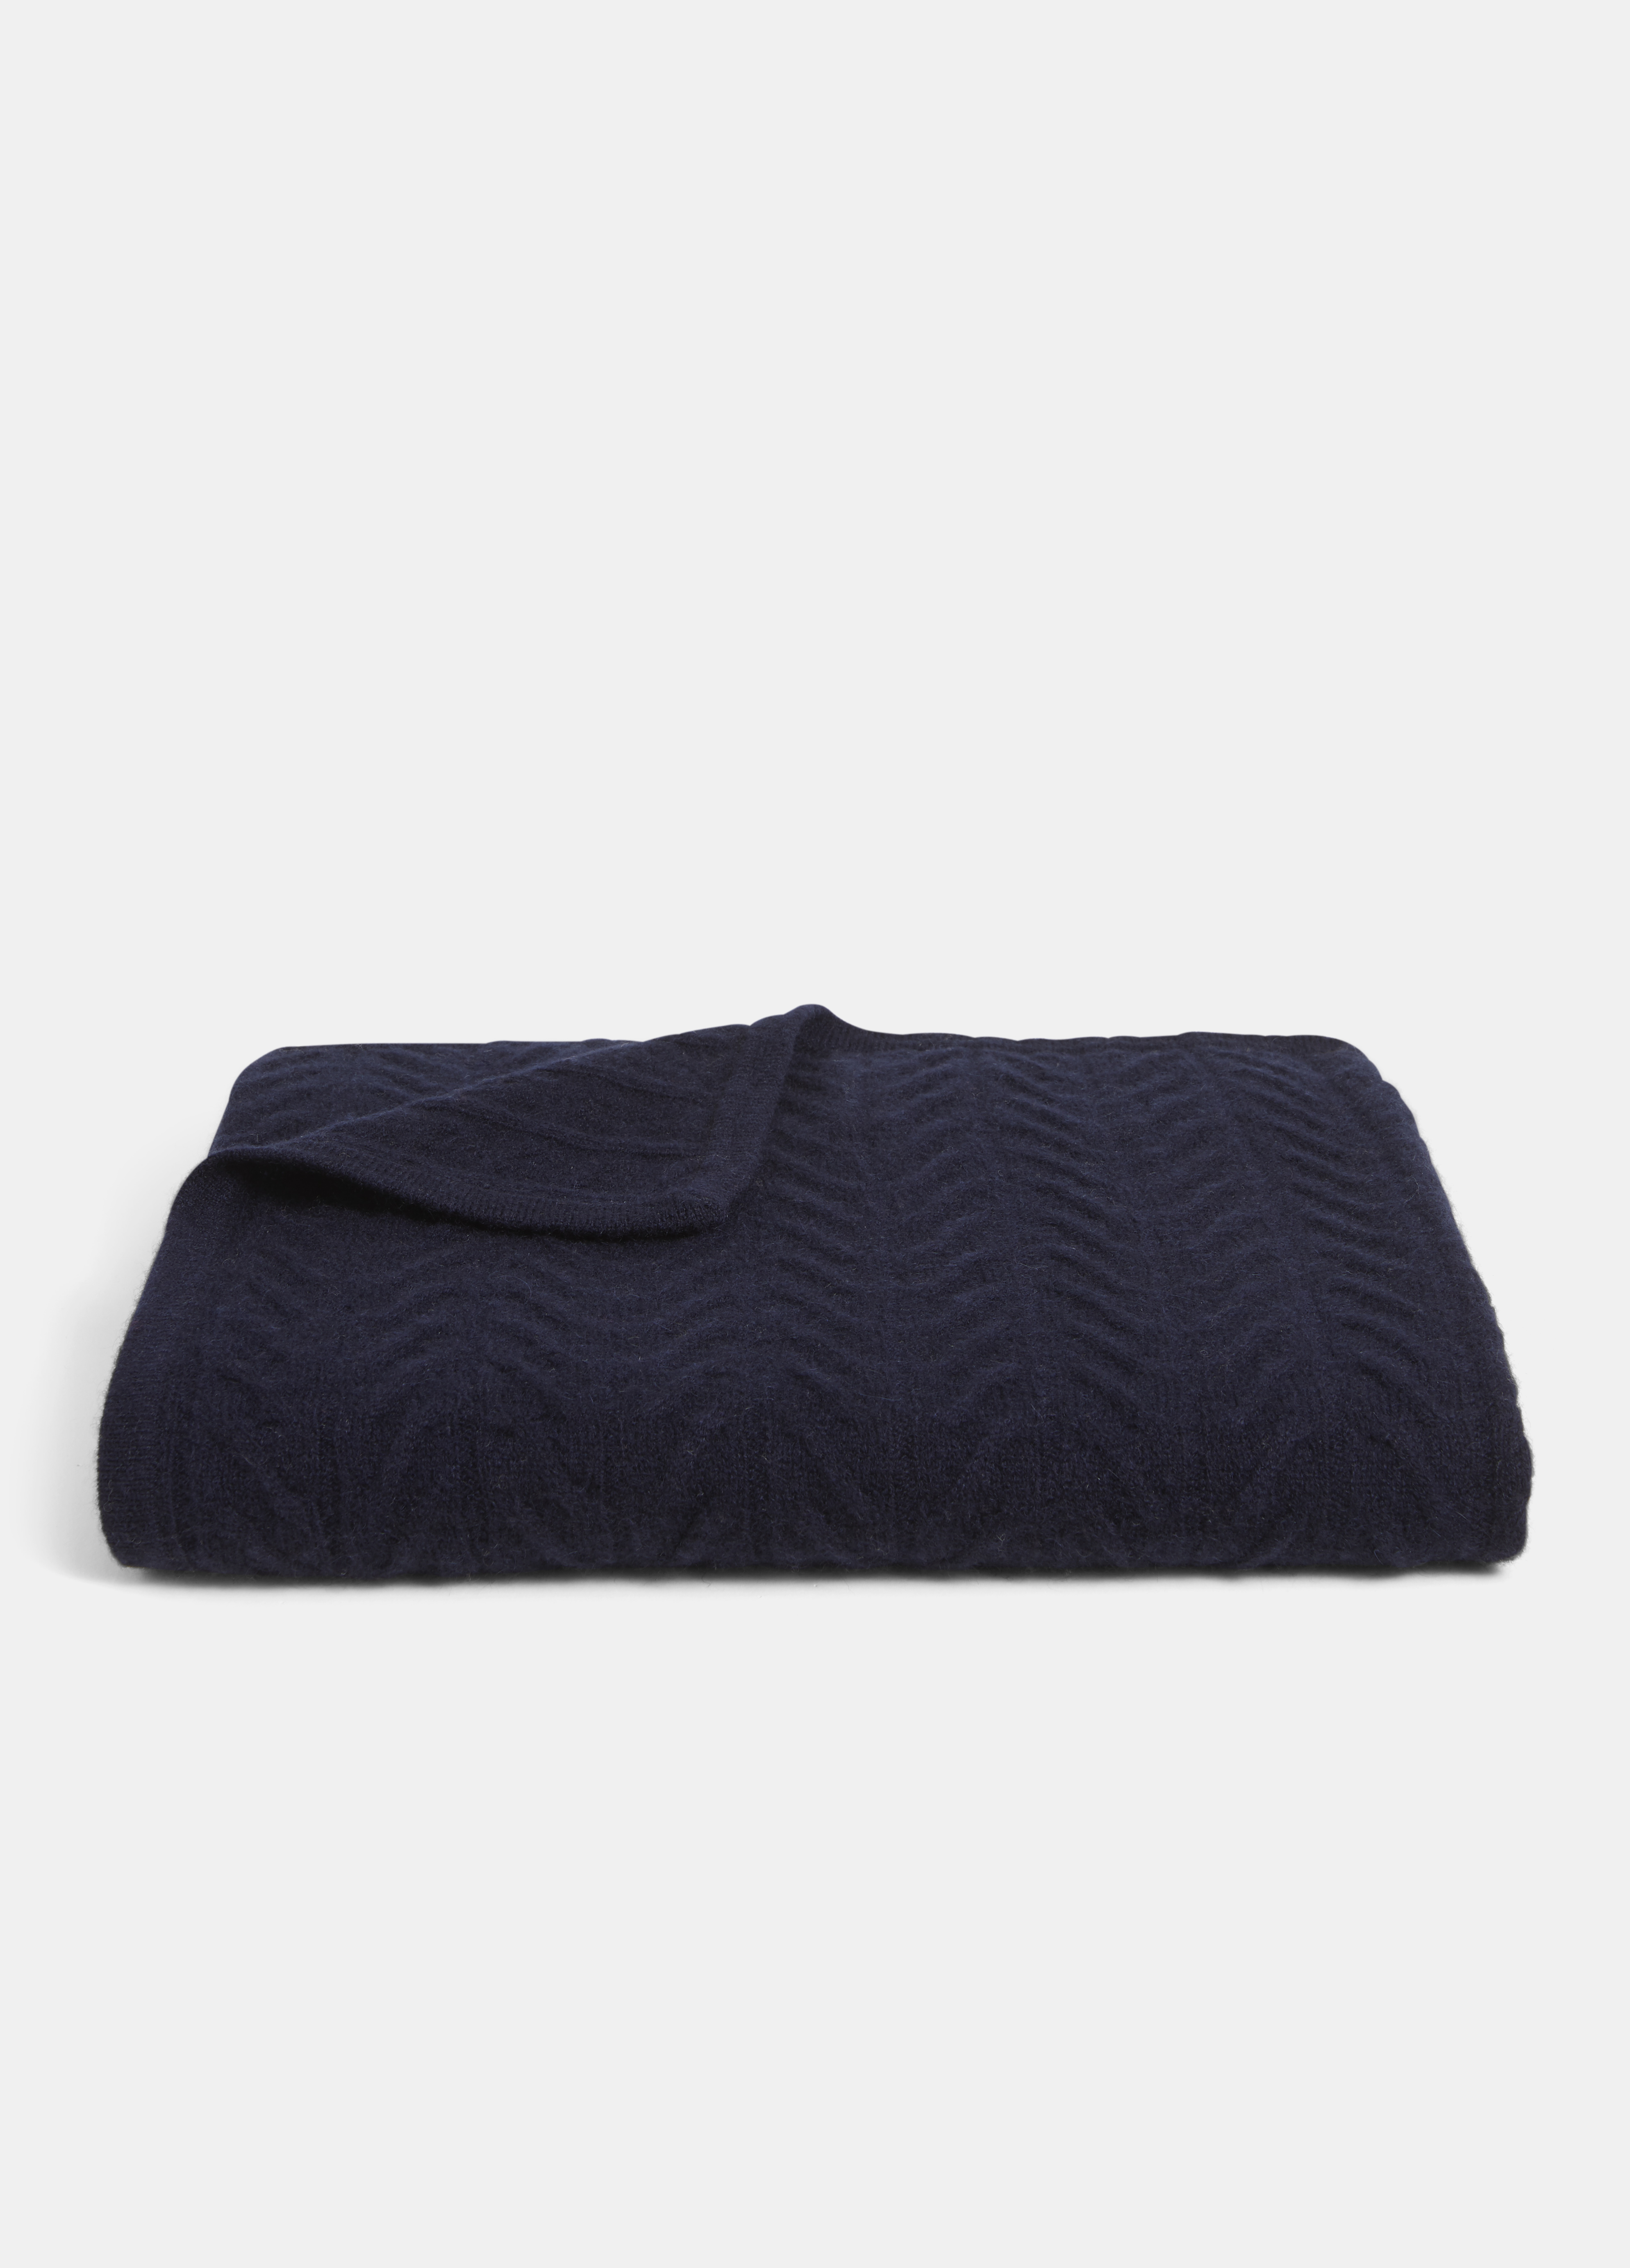 Cashmere Cable Blanket